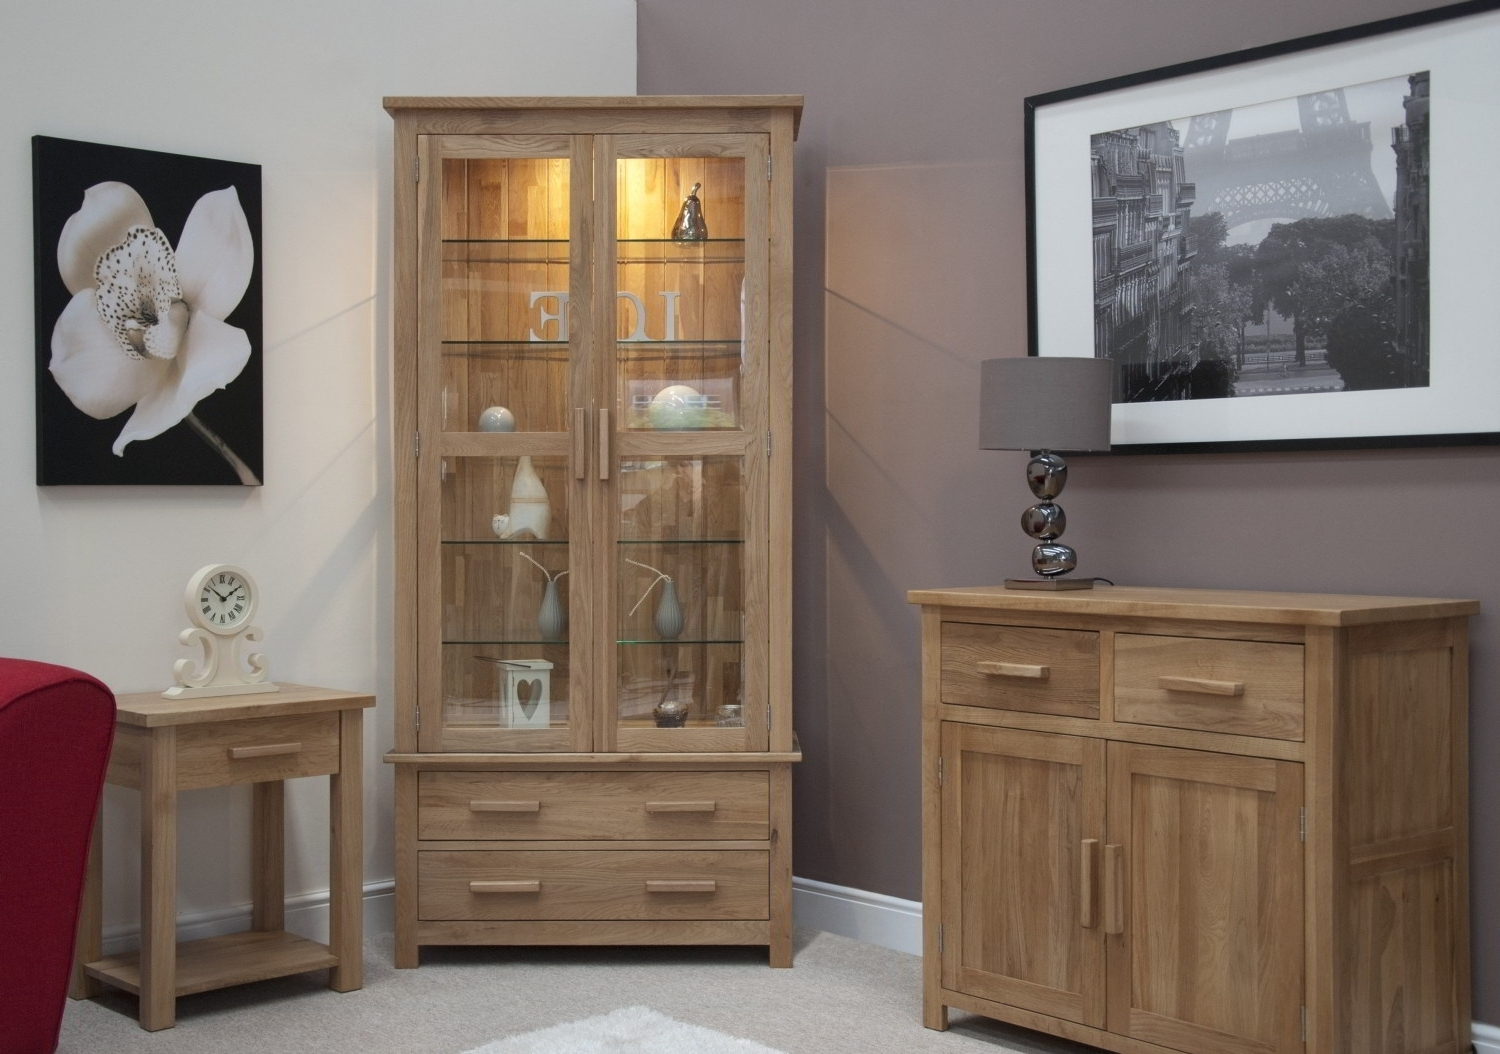 Dining Room Cabinets intended for Preferred Eton Solid Oak Living Room Furniture Glazed Display Cabinet Cupboard